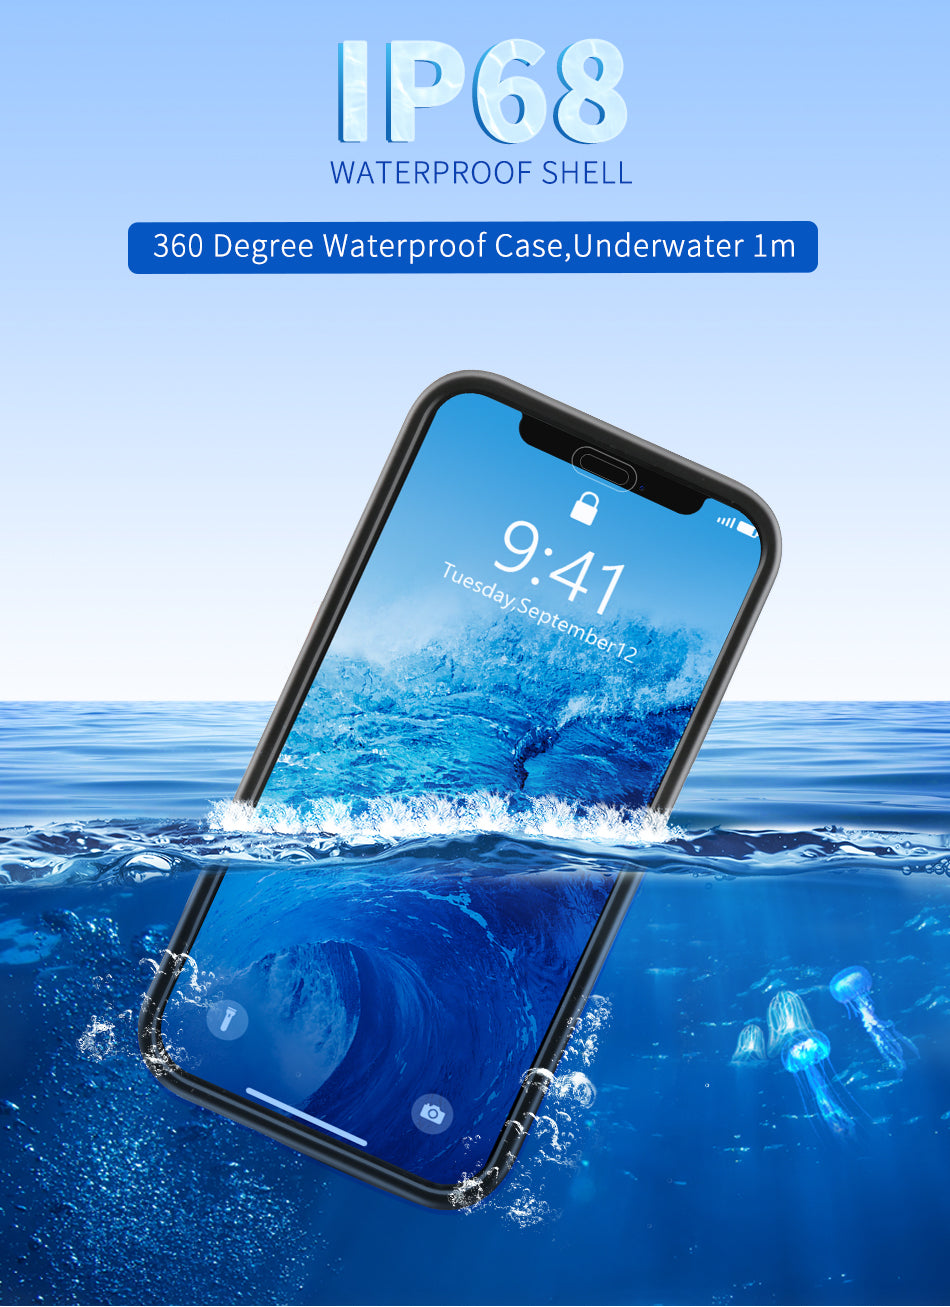 Water-Proof & Shock-Proof Phone Case